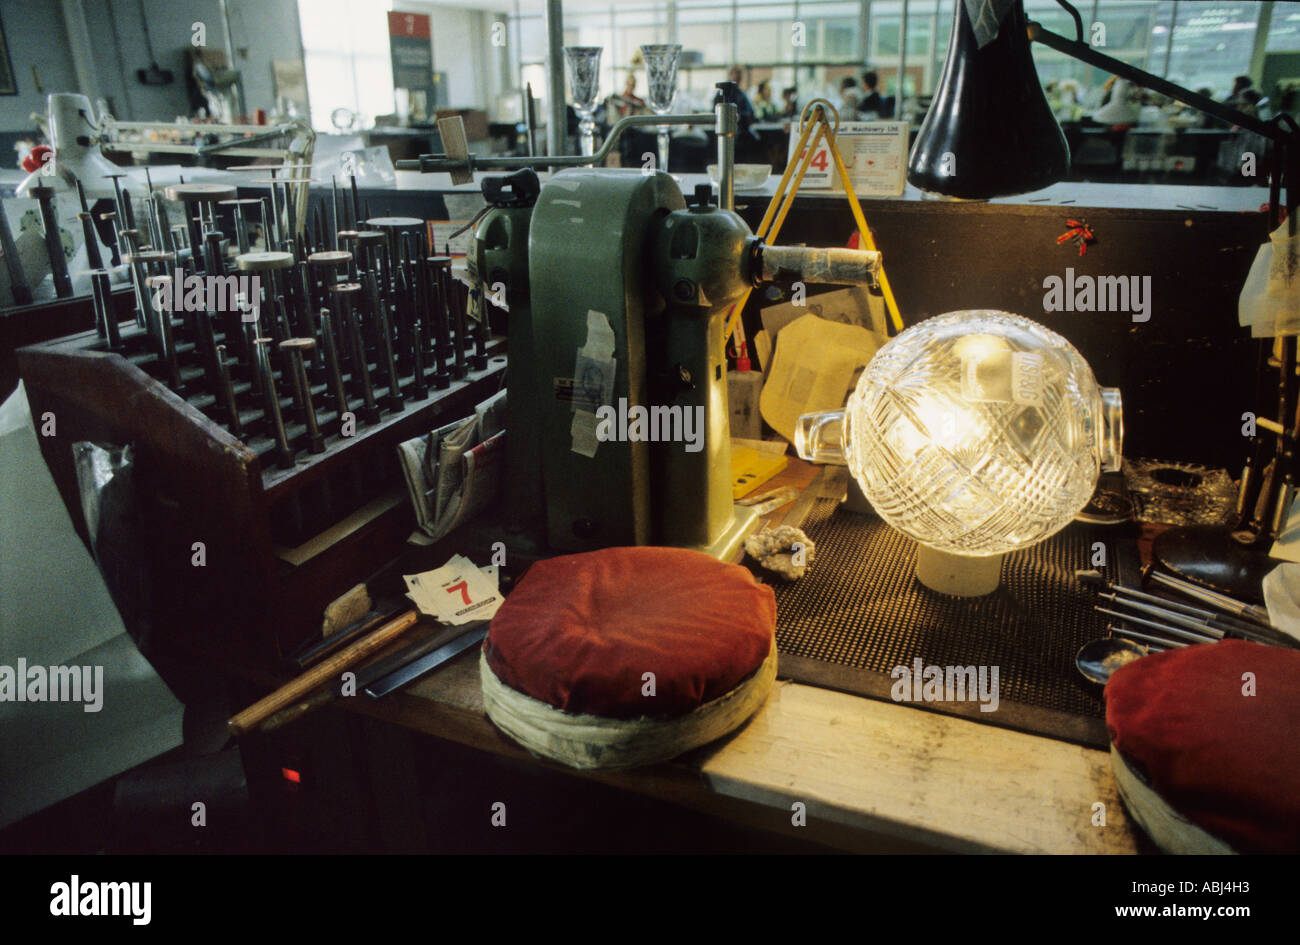 Craftsman's bench at Waterford Crystal factory, Waterford, Republic of Ireland - Stock Image